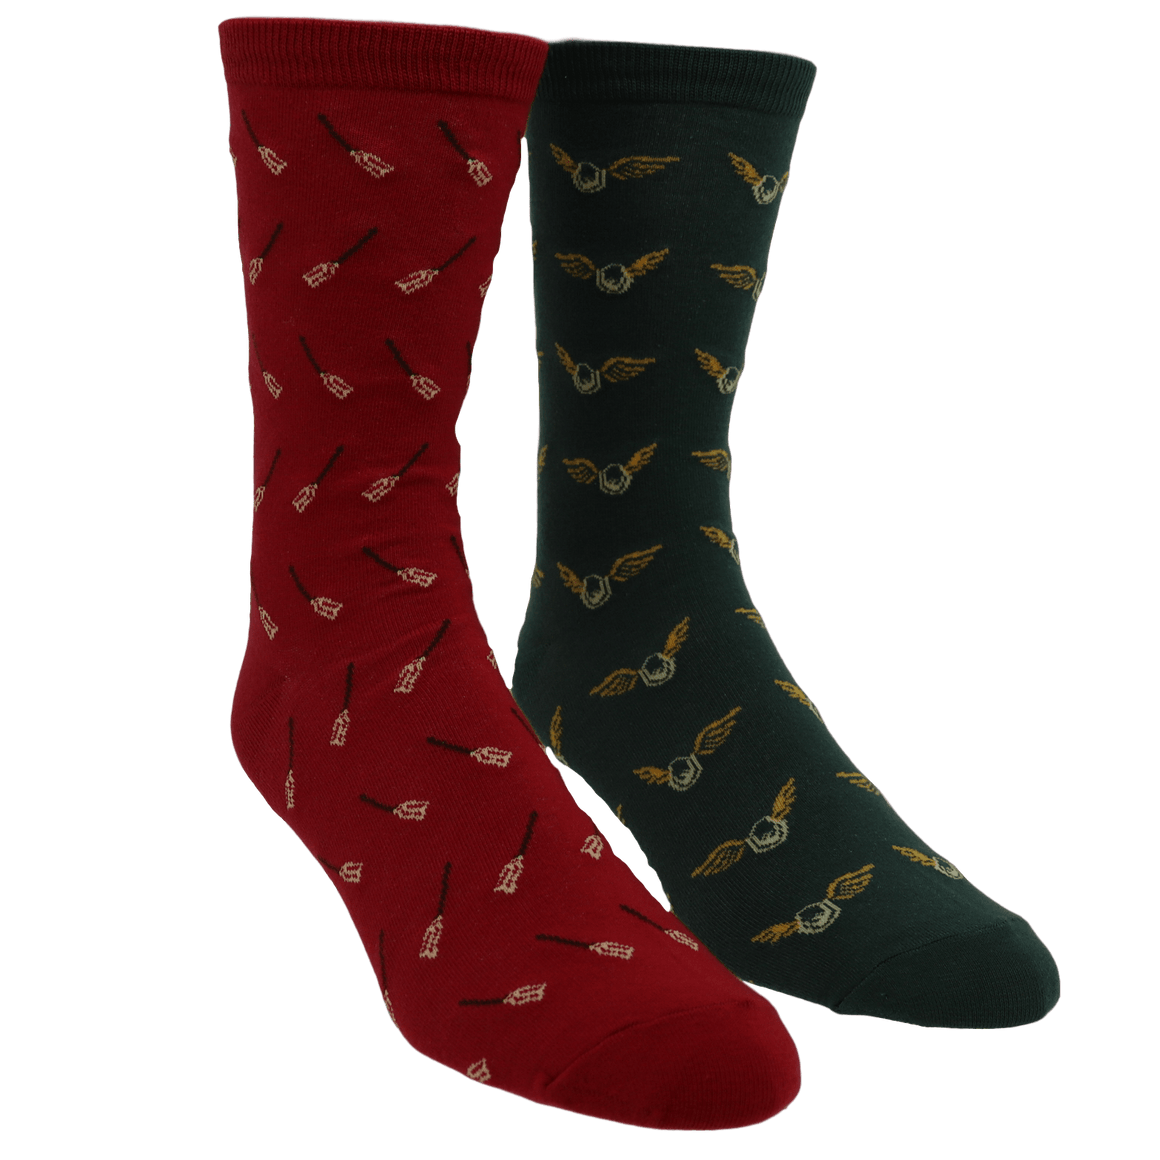 Harry Potter Dobby Christmas Socks - Large by Out Of Print - The Sock Spot